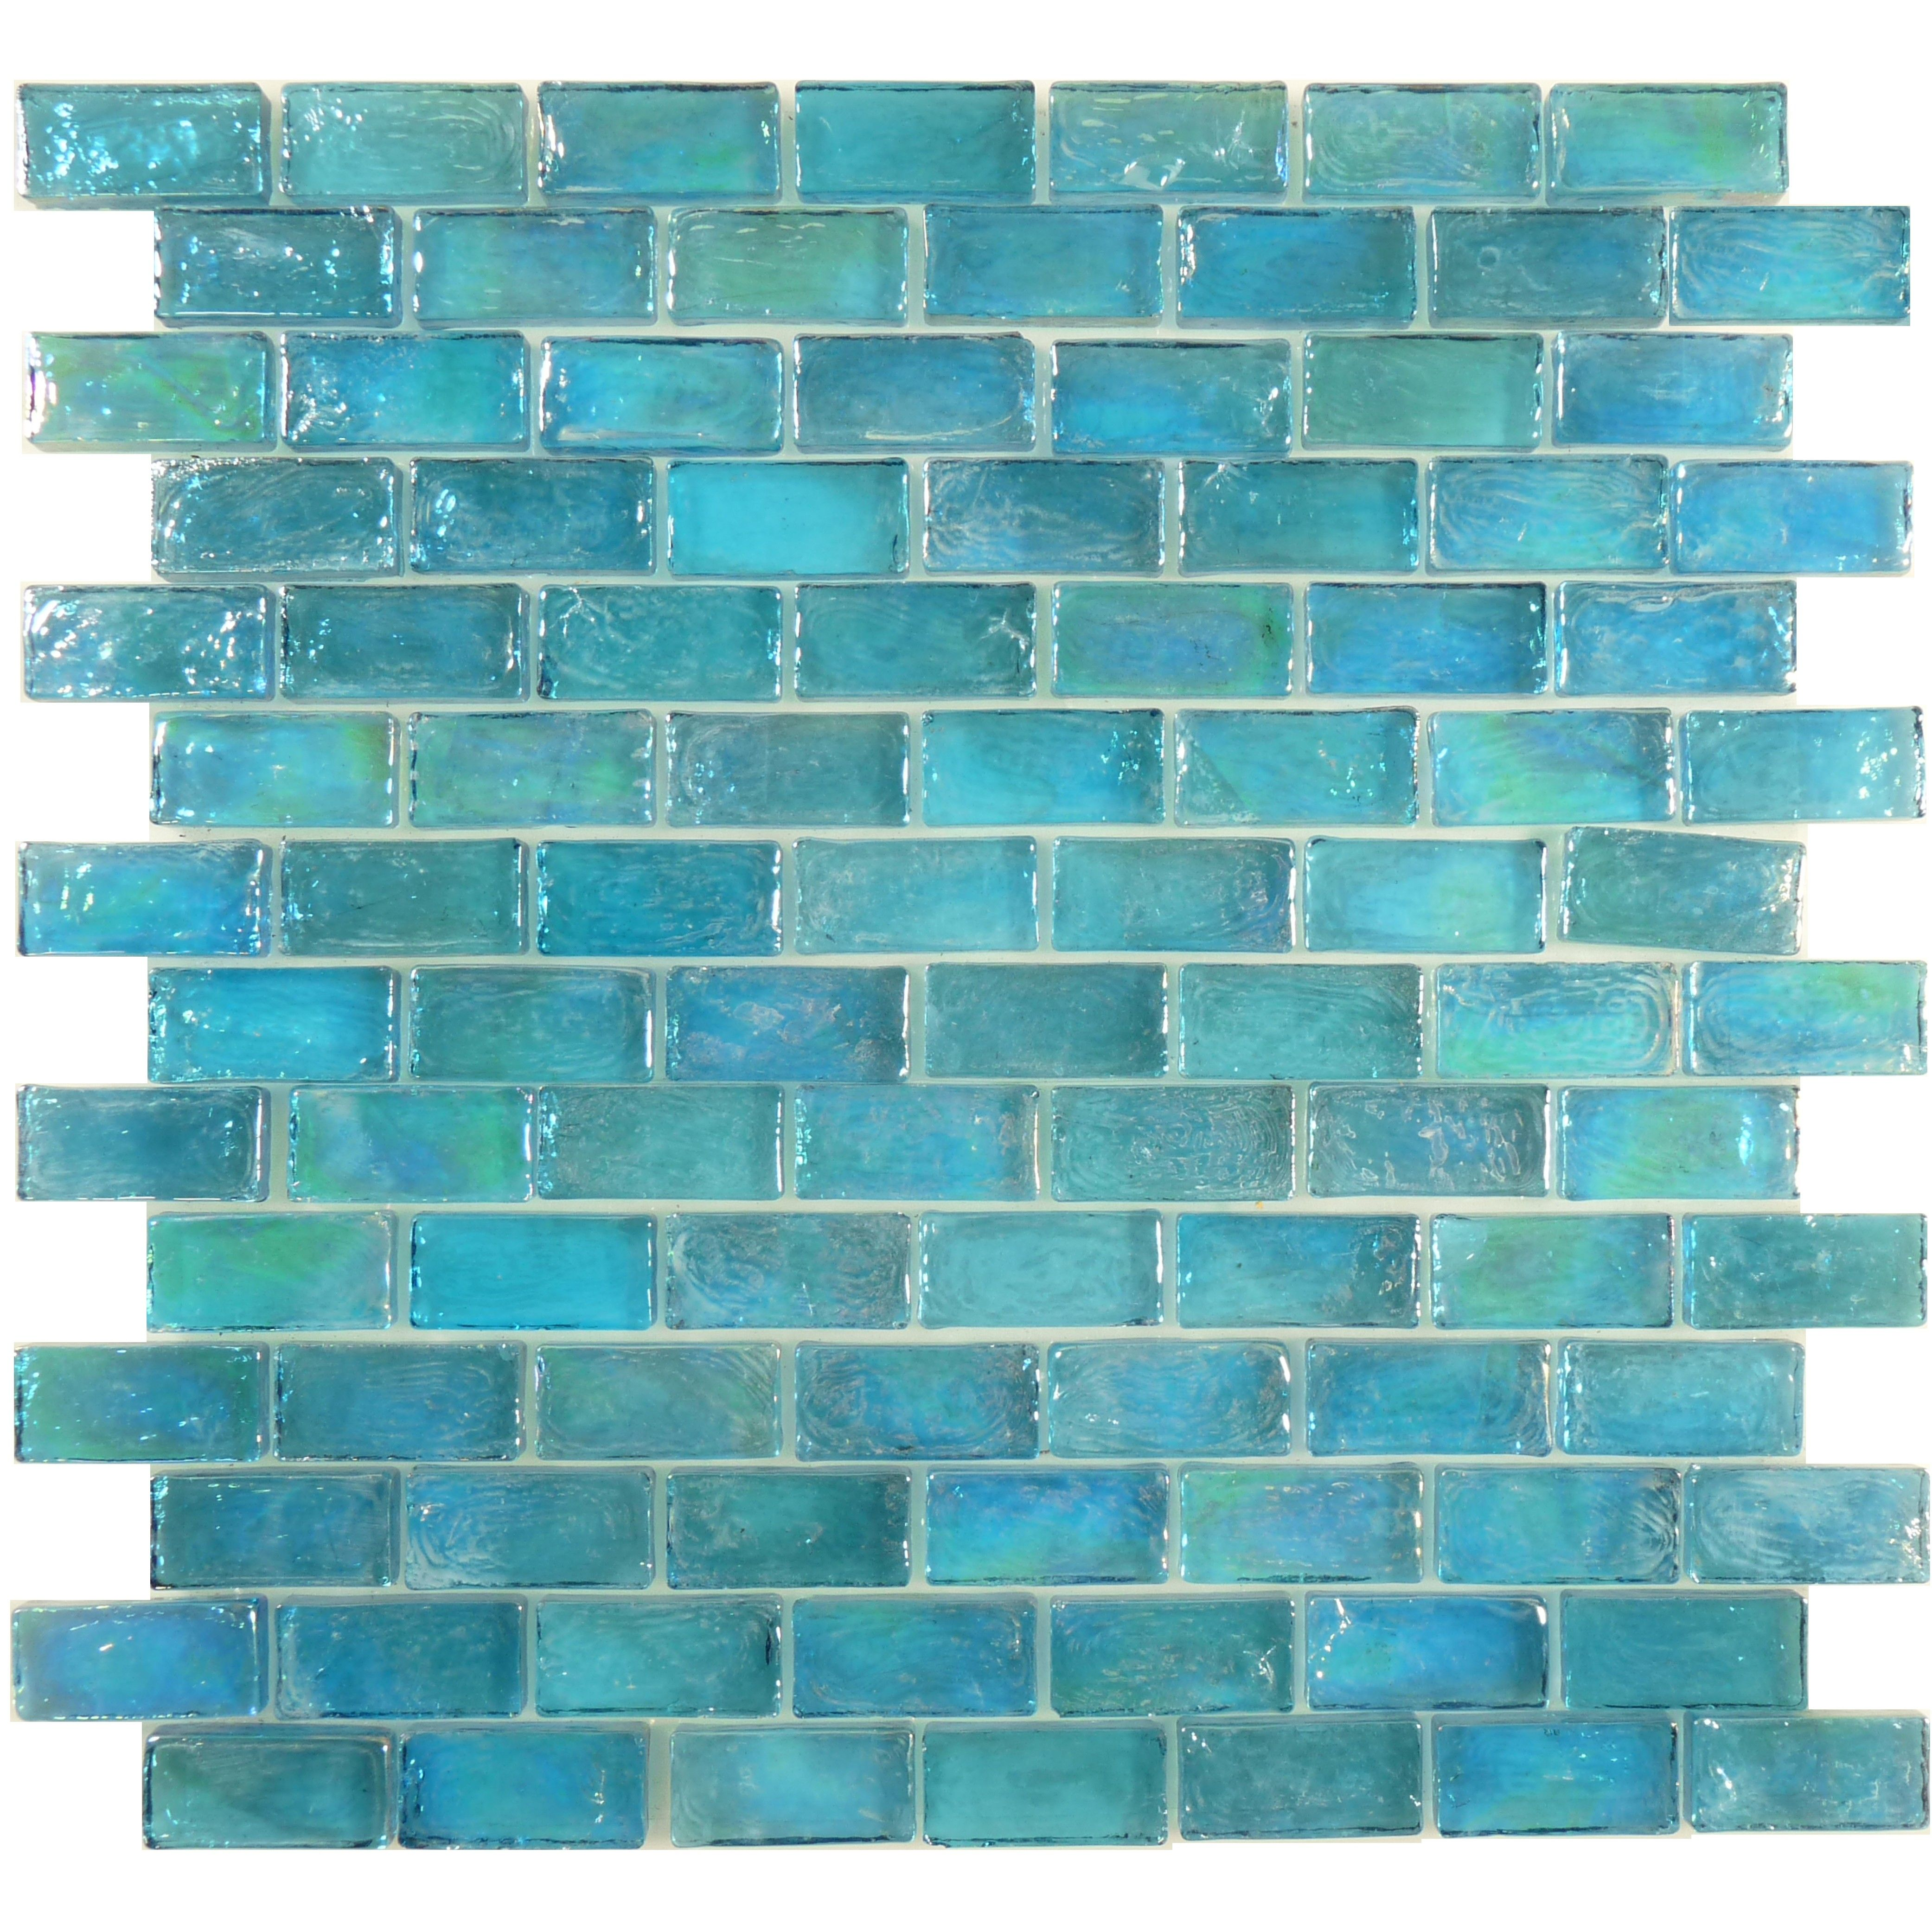 The Uniform Brick Tile Shape Of These Lovely Aqua Blue Glass Tiles May Be On The Straight And Narrow But Iridescent Glass Tiles Sea Glass Tile Blue Glass Tile